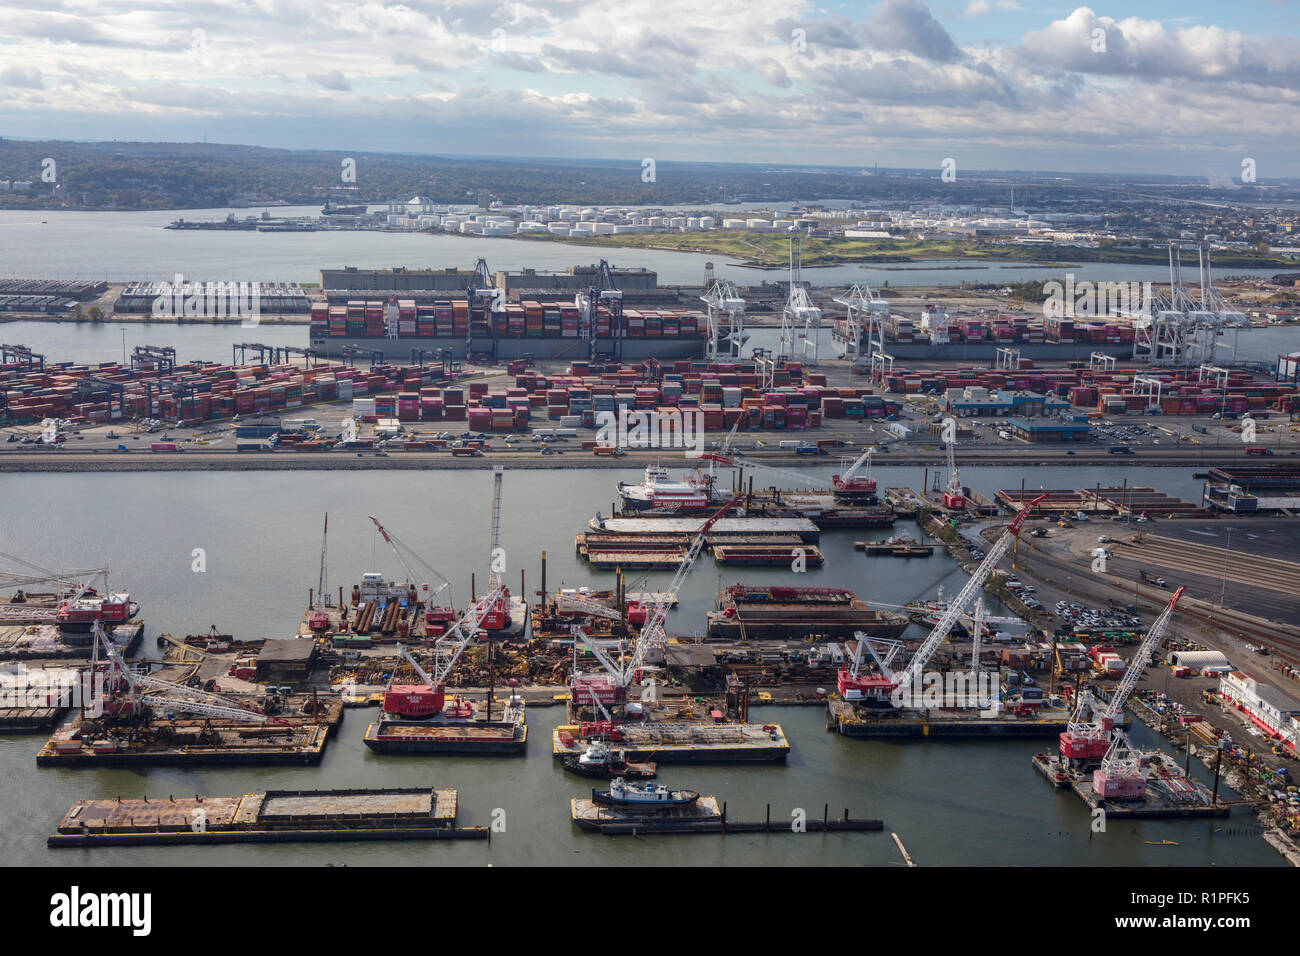 helicopter aerial view of GCT Bayonne container terminal and surrounding piers, Bayonne, Jersey City, New Jersey, USA Stock Photo